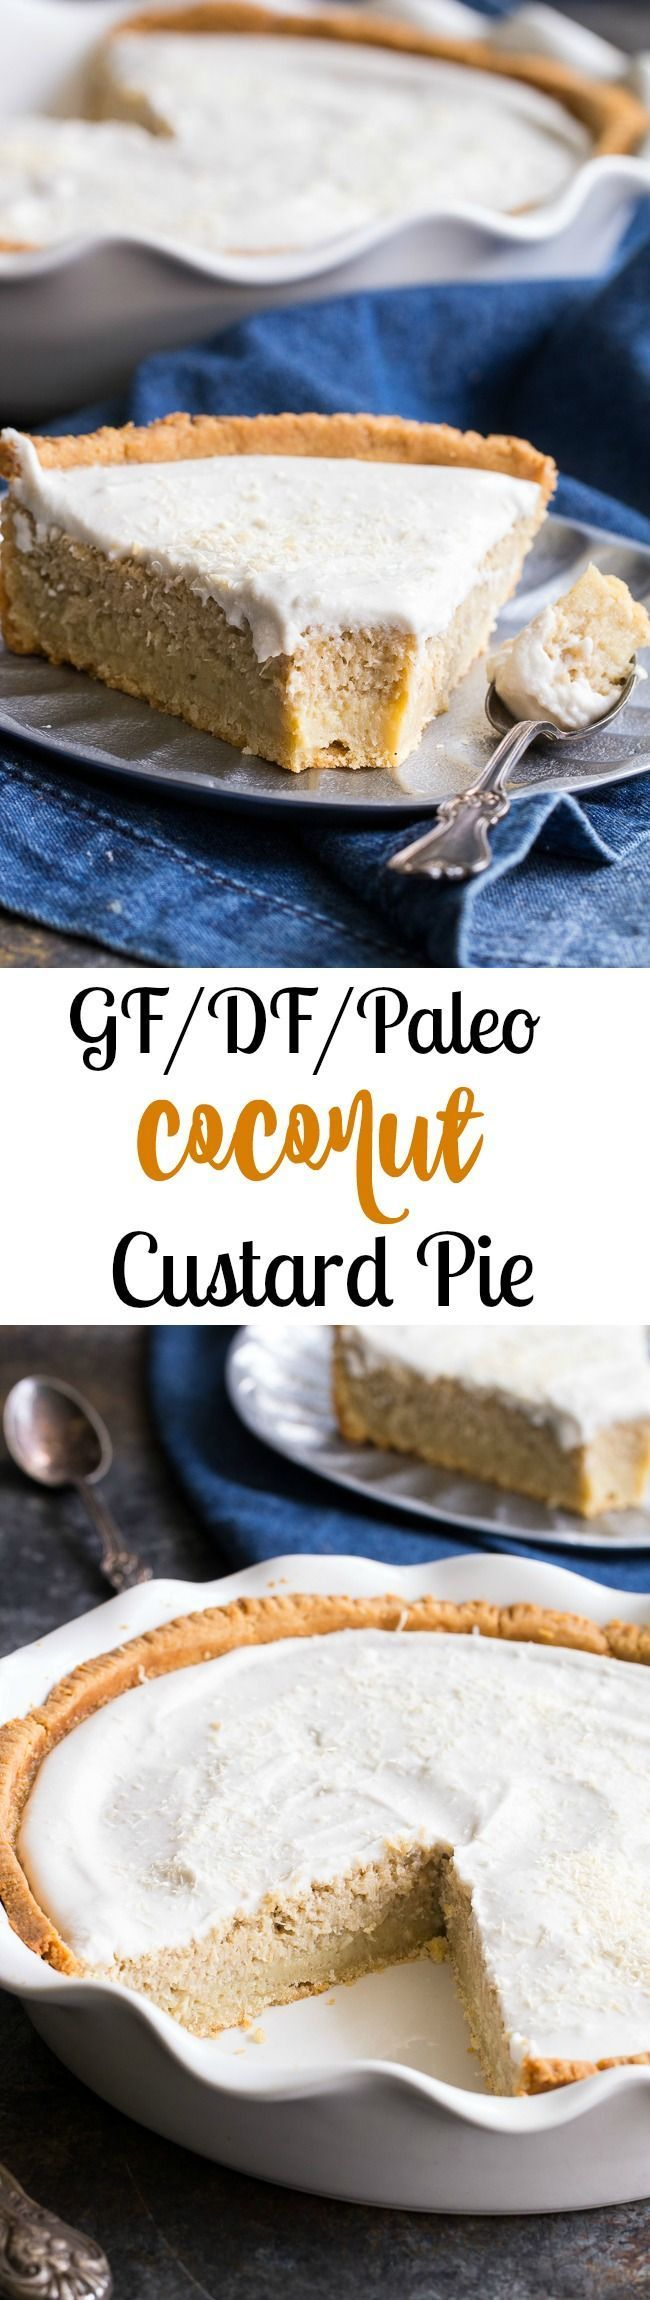 This easy to make, creamy coconut custard pie sweetened with pure maple syrup and topped with coconut whipped cream for the perfect coconut dessert!  This pie is baked up in an easy paleo pie crust and is completely gluten free, dairy free, paleo and refined sugar free.